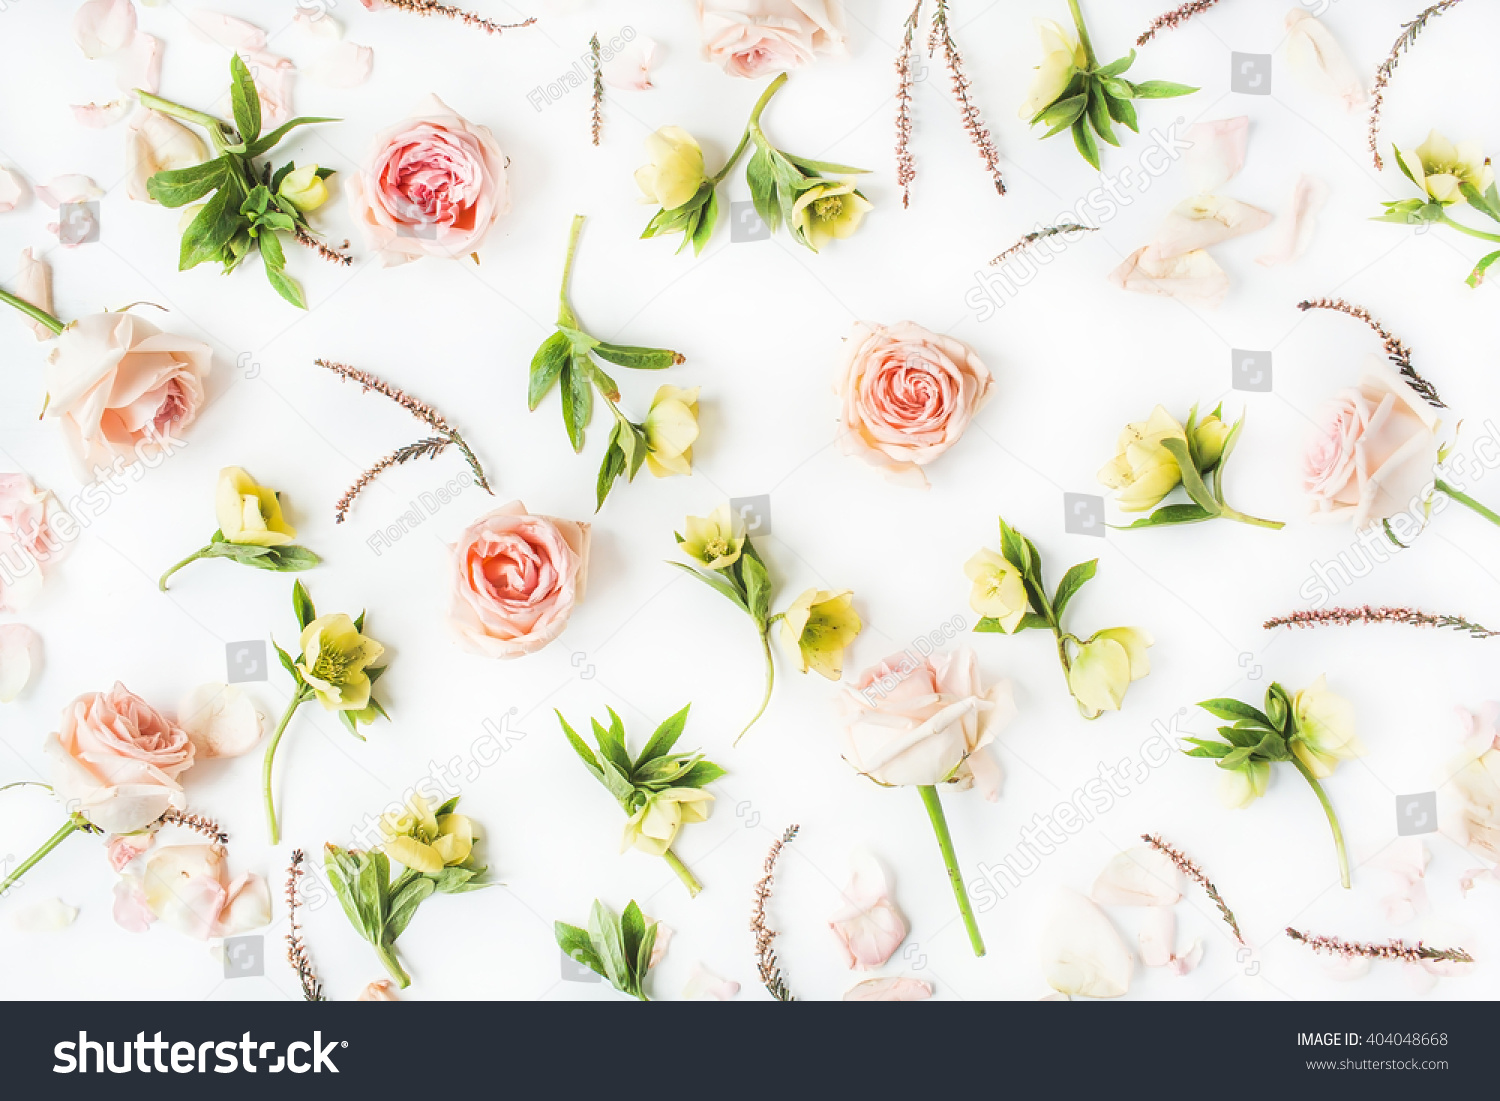 Wallpaper Texture Pink Roses Yellow Flowers Stock Photo Edit Now